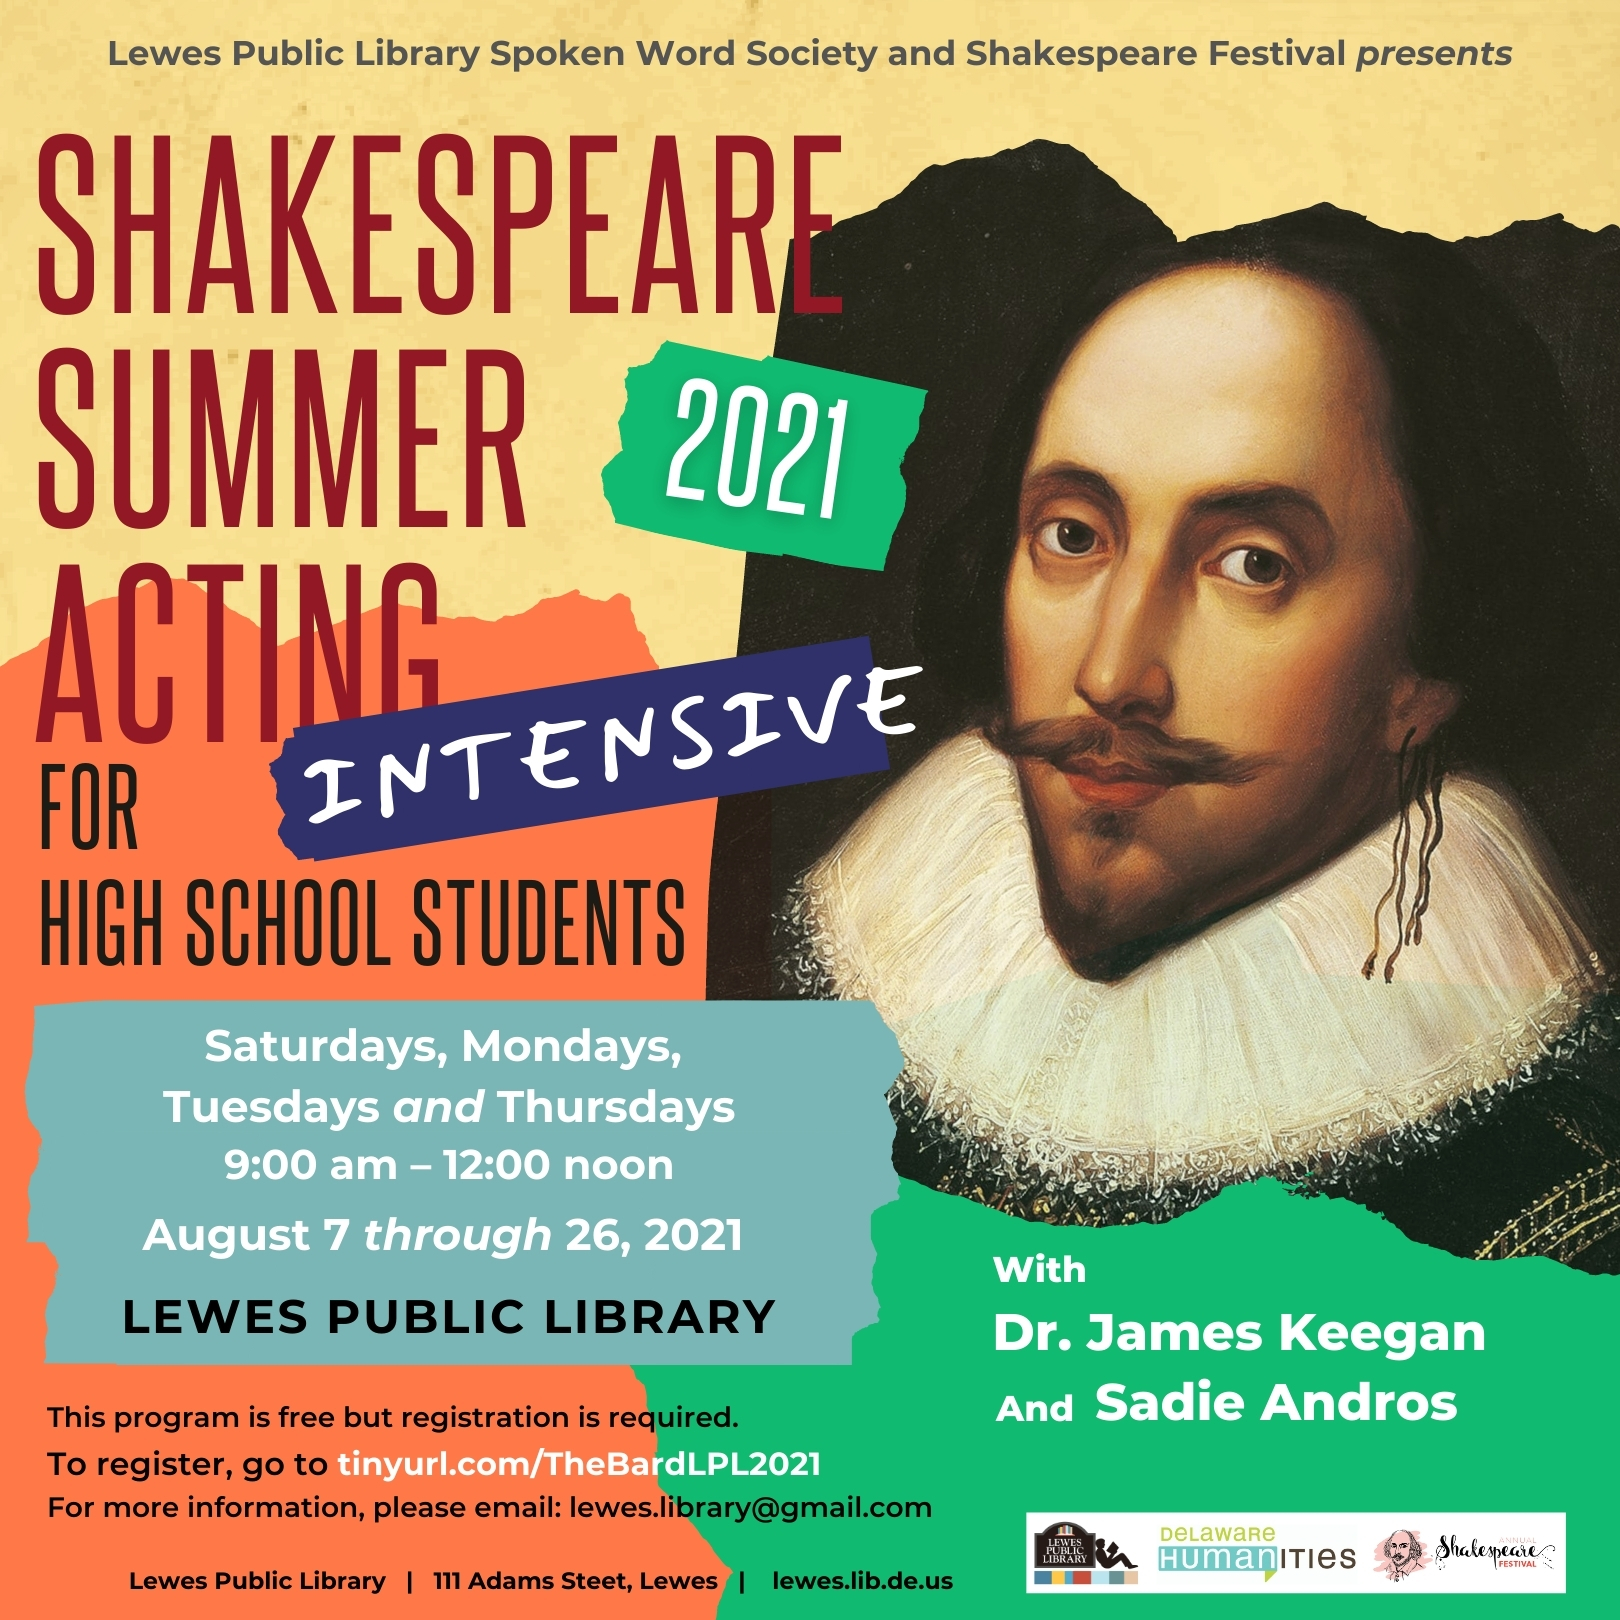 Shakespeare Summer Acting Intensive for High School Students